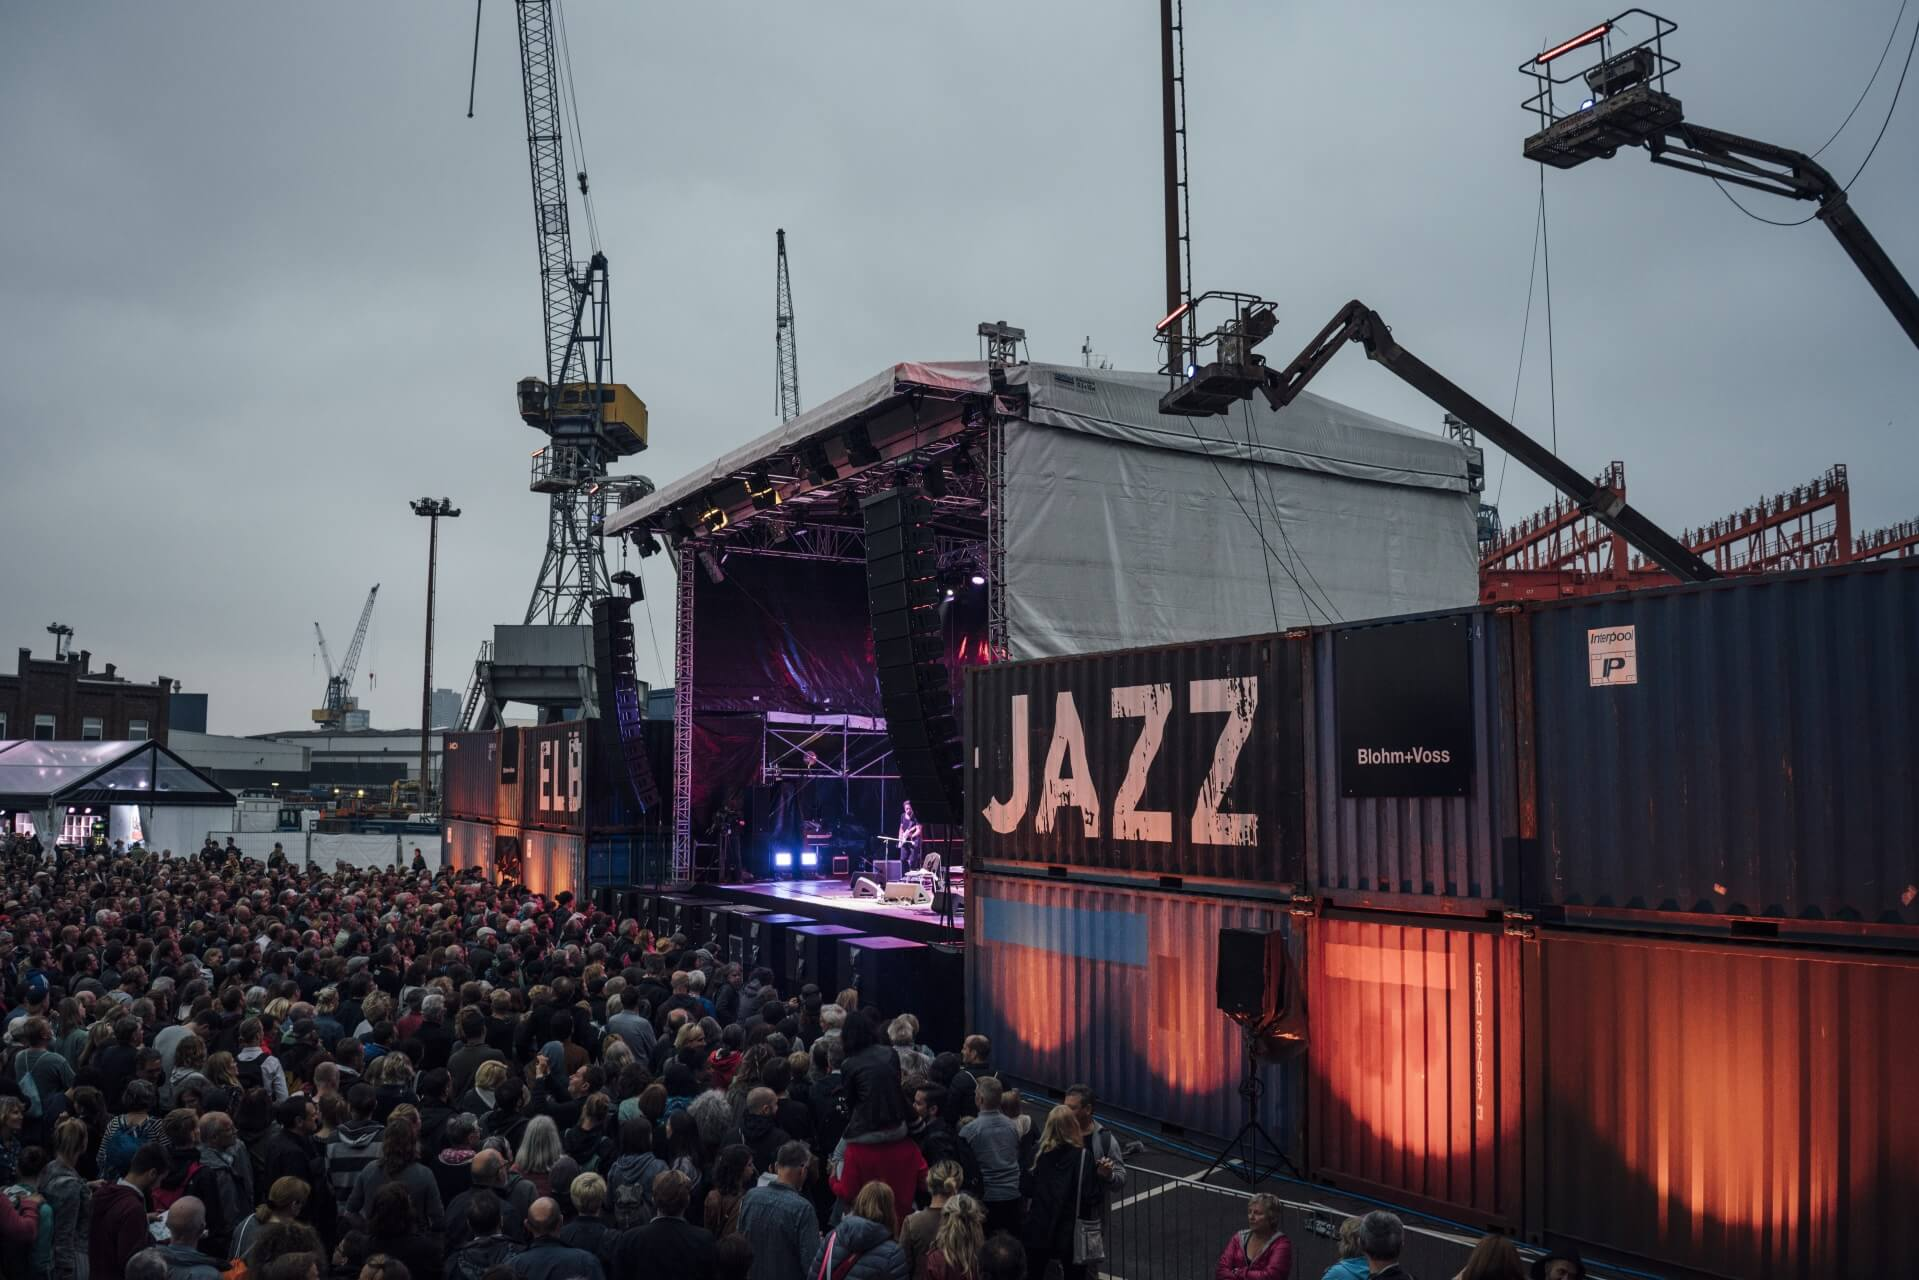 Das Elbjazz Festival in Hamburg